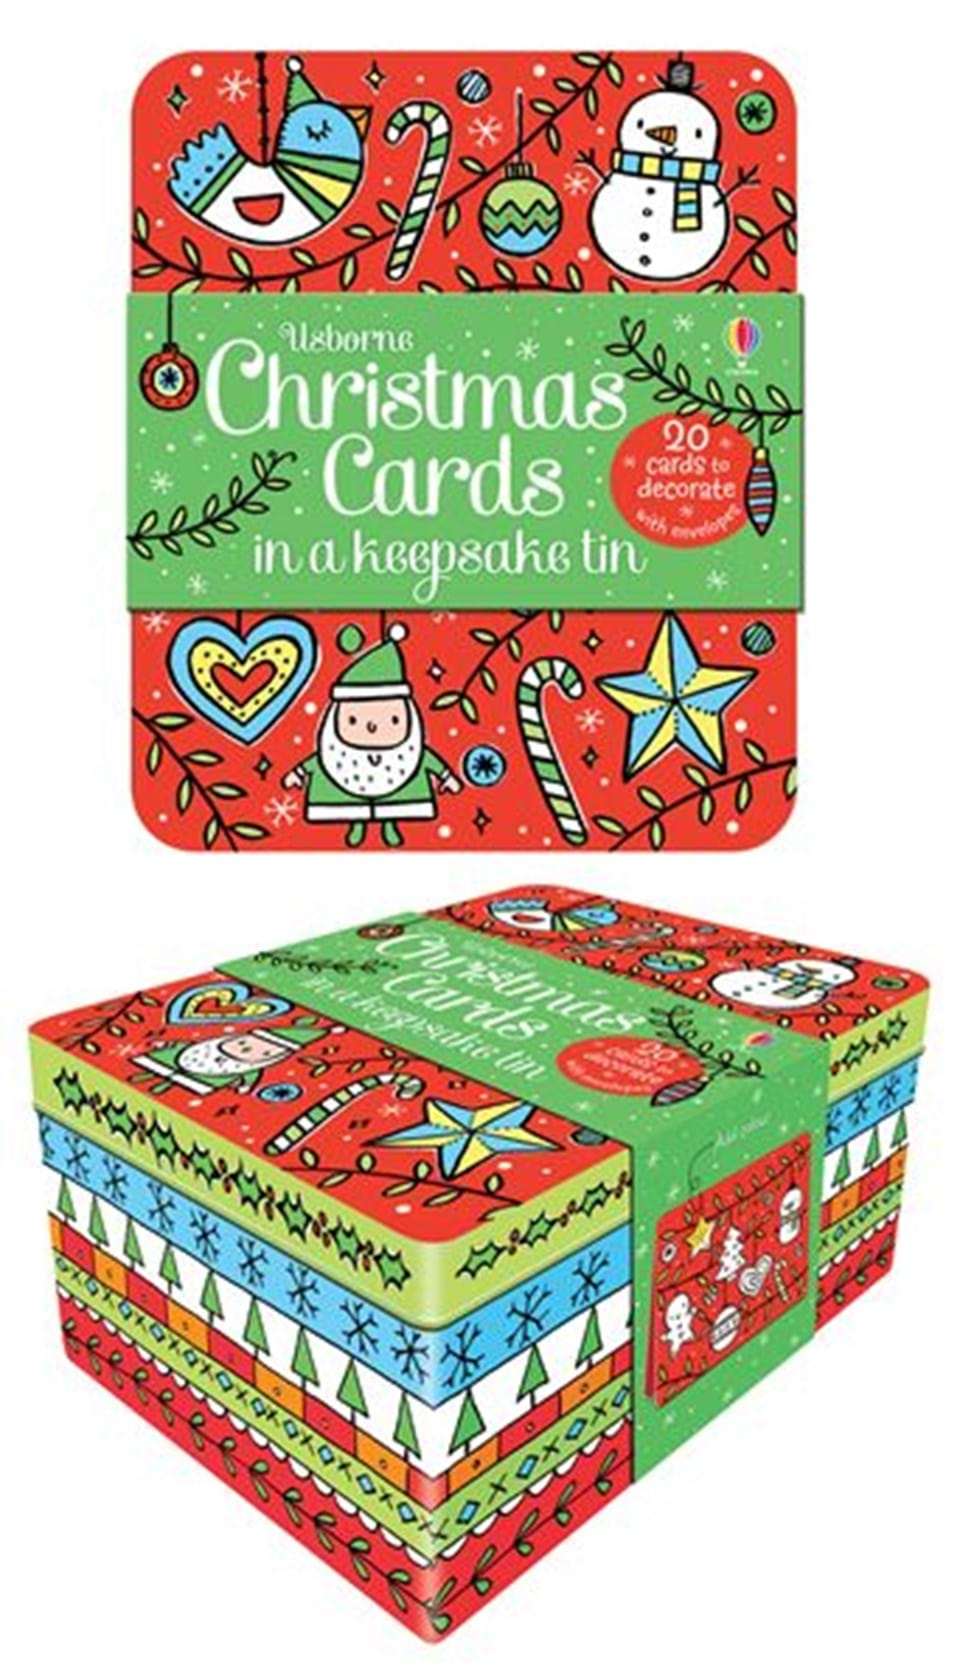 Christmas cards to decorate in a keepsake tin at usborne for Decorating tins for christmas